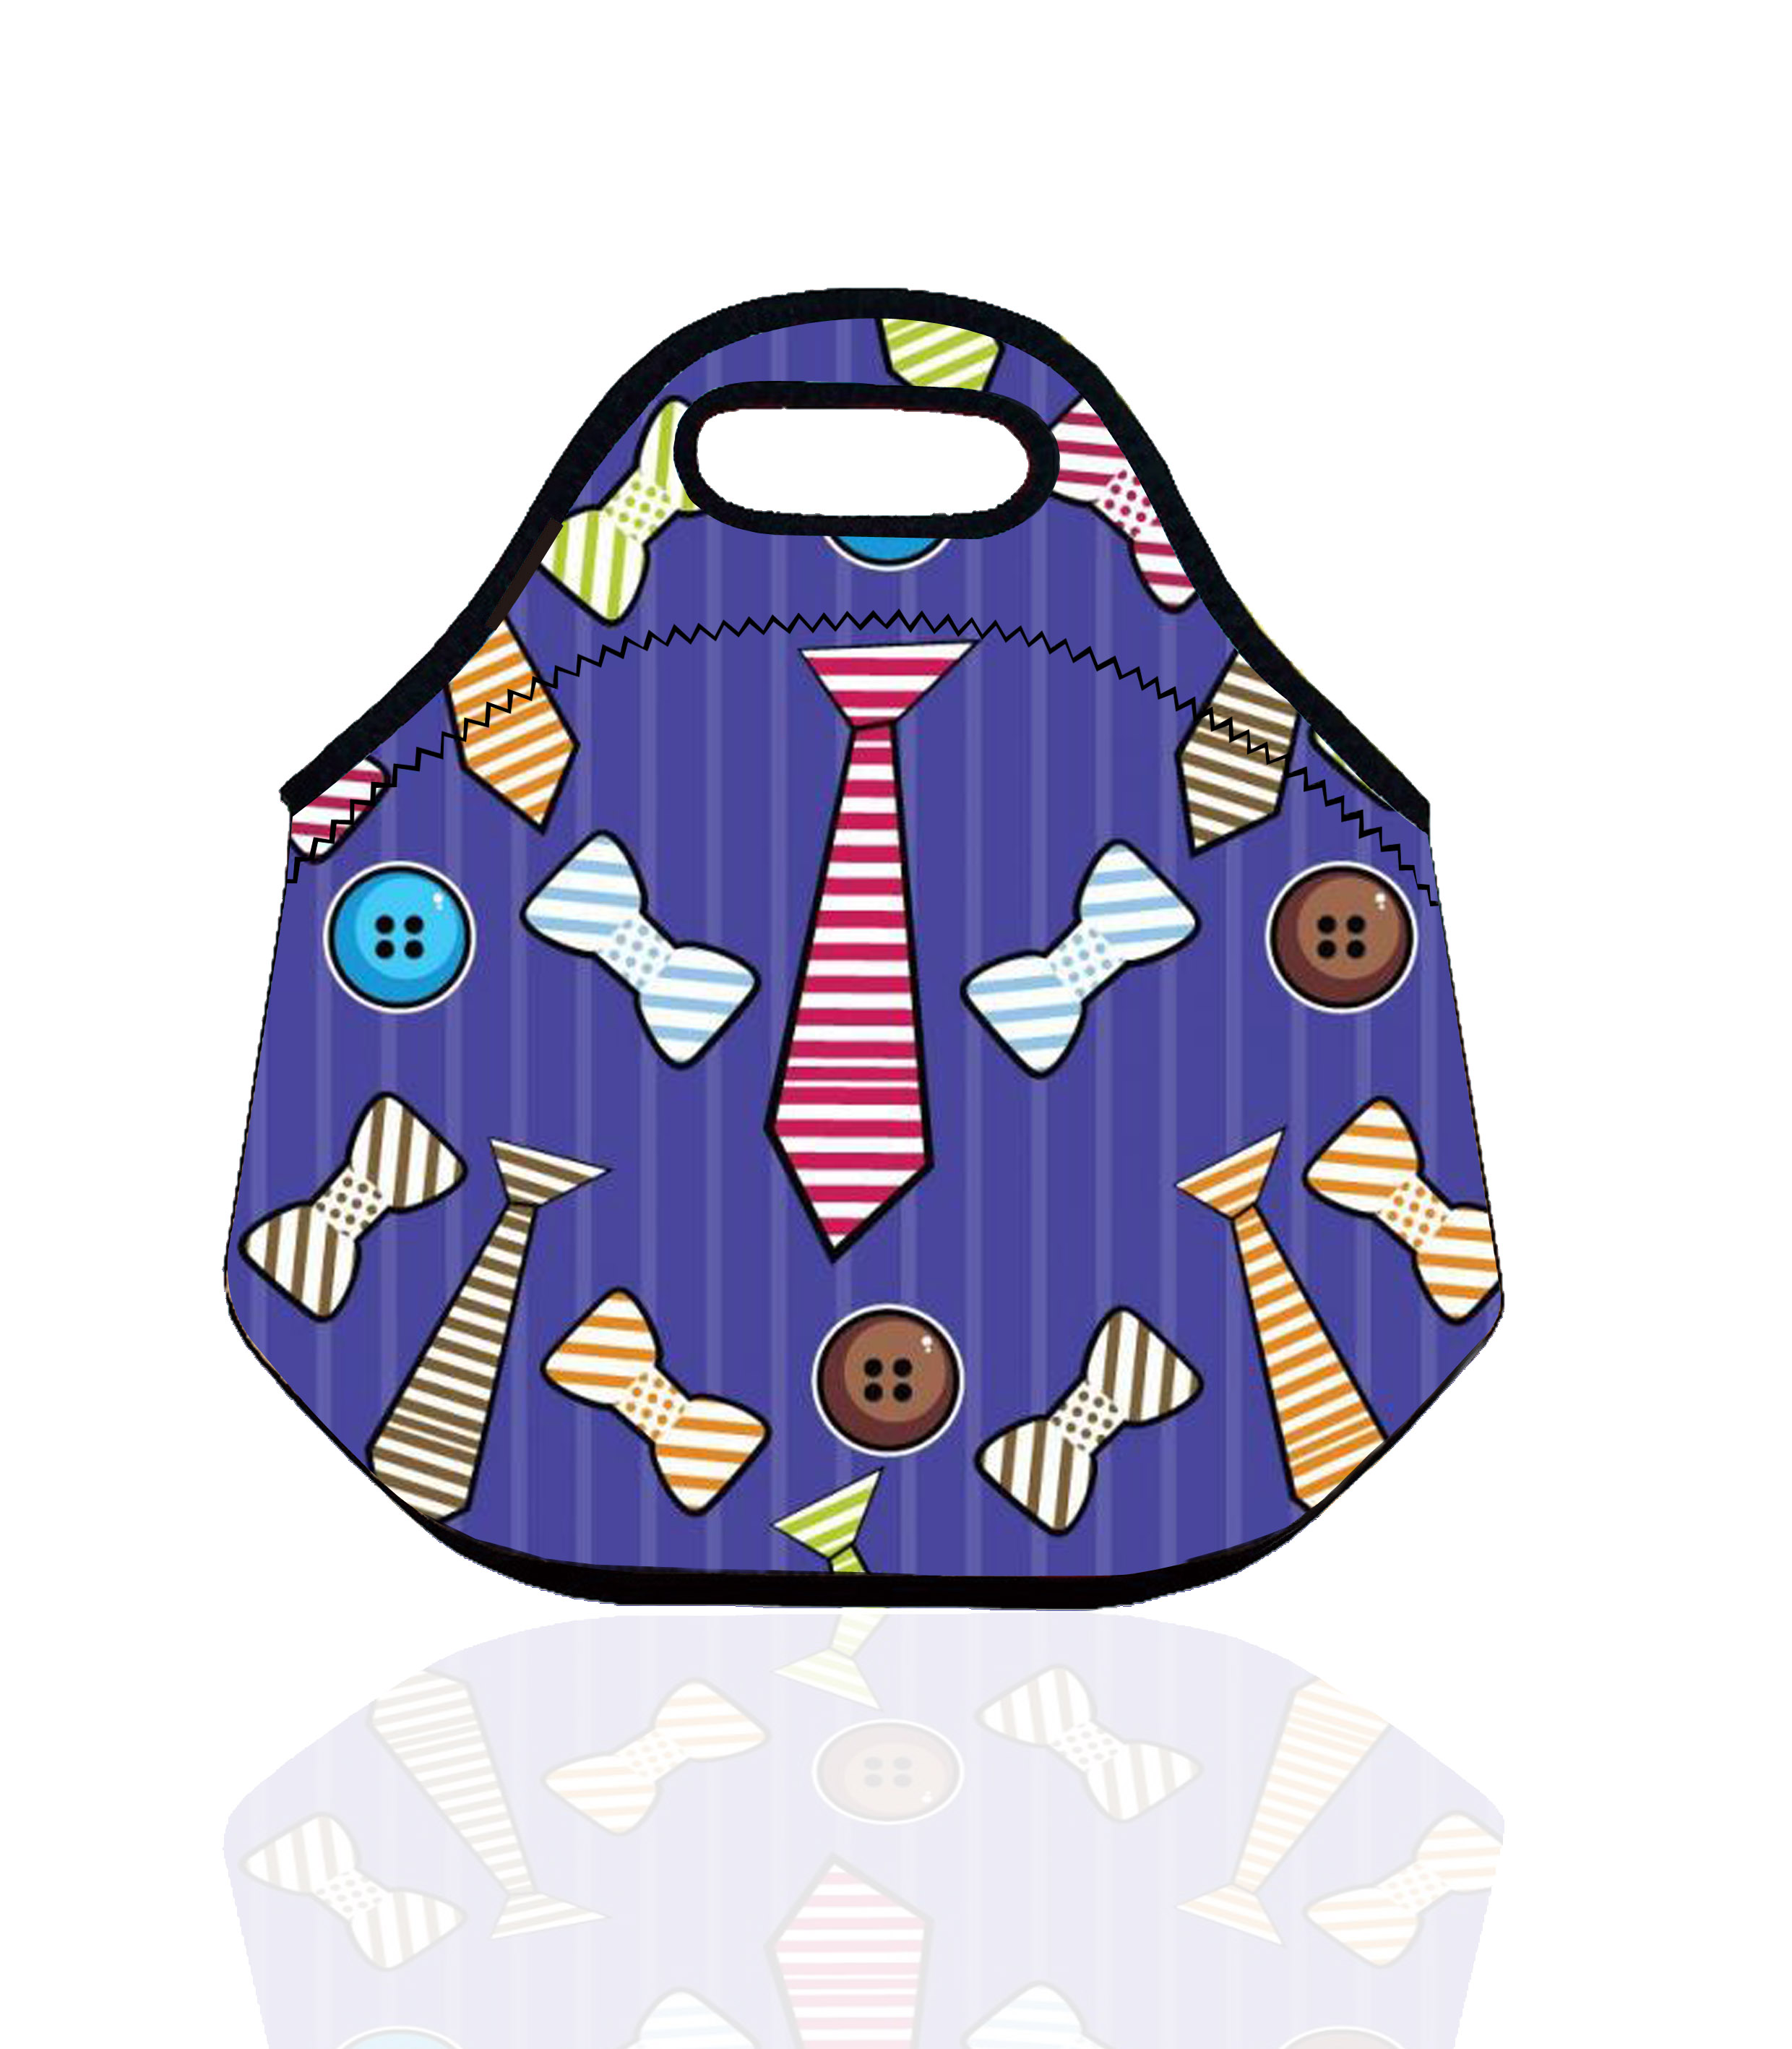 Bone and Tie Pattern Neoprene Thermal Insulated Lunch Bag for Women Kids storage bag Tote lunch Box Insulation Bag bolsa termica(China (Mainland))